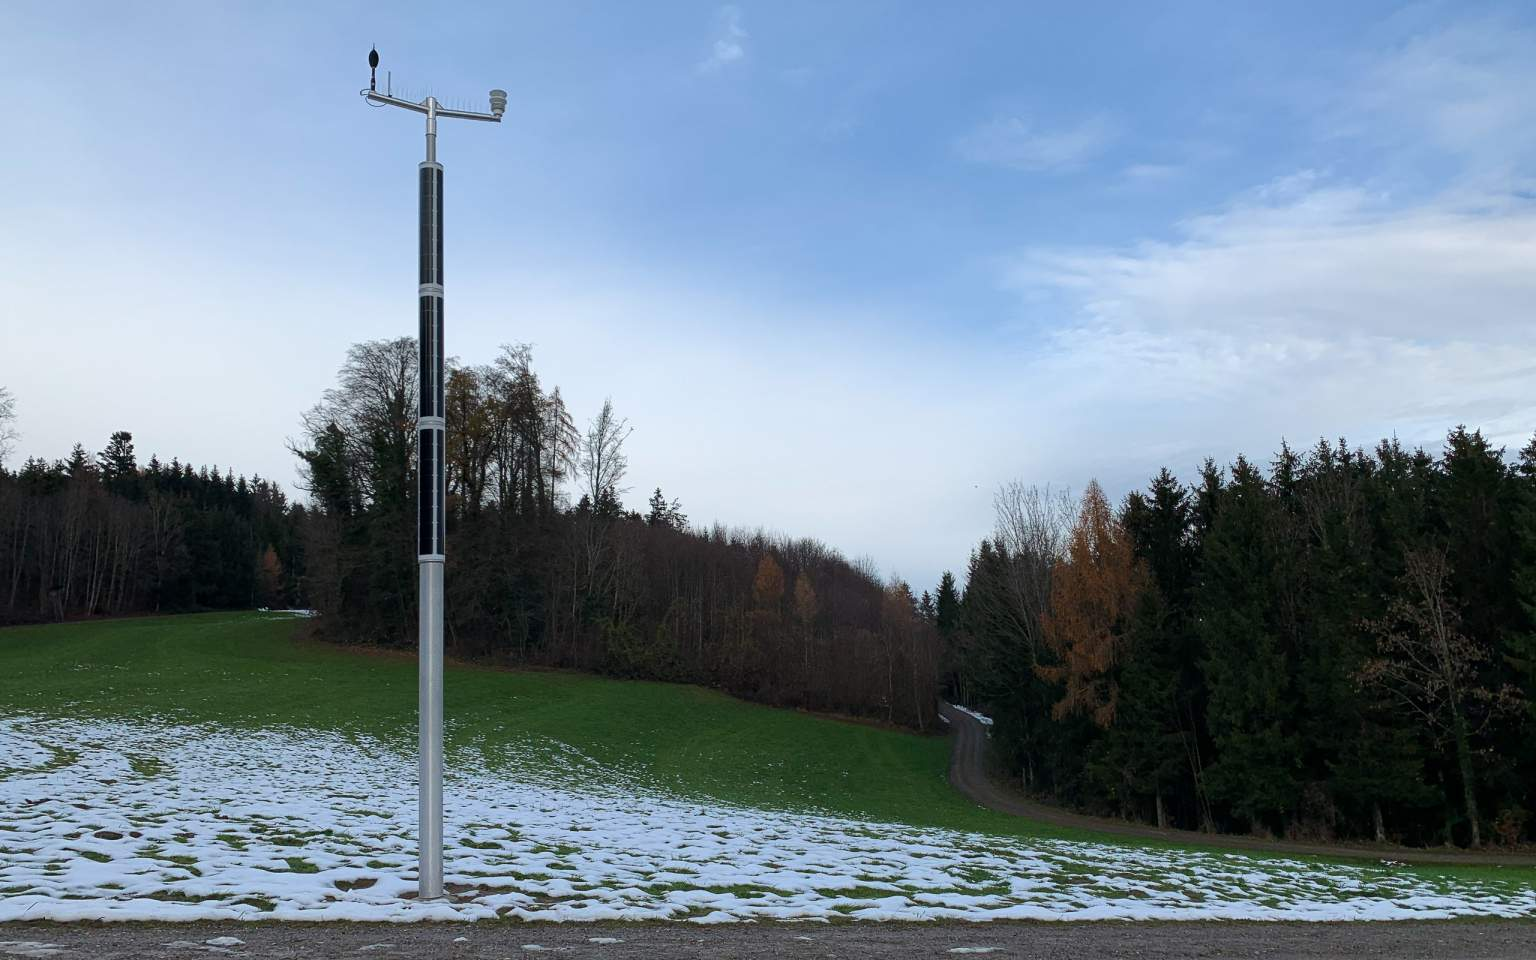 Soluxio smart pole for monitoring air traffic